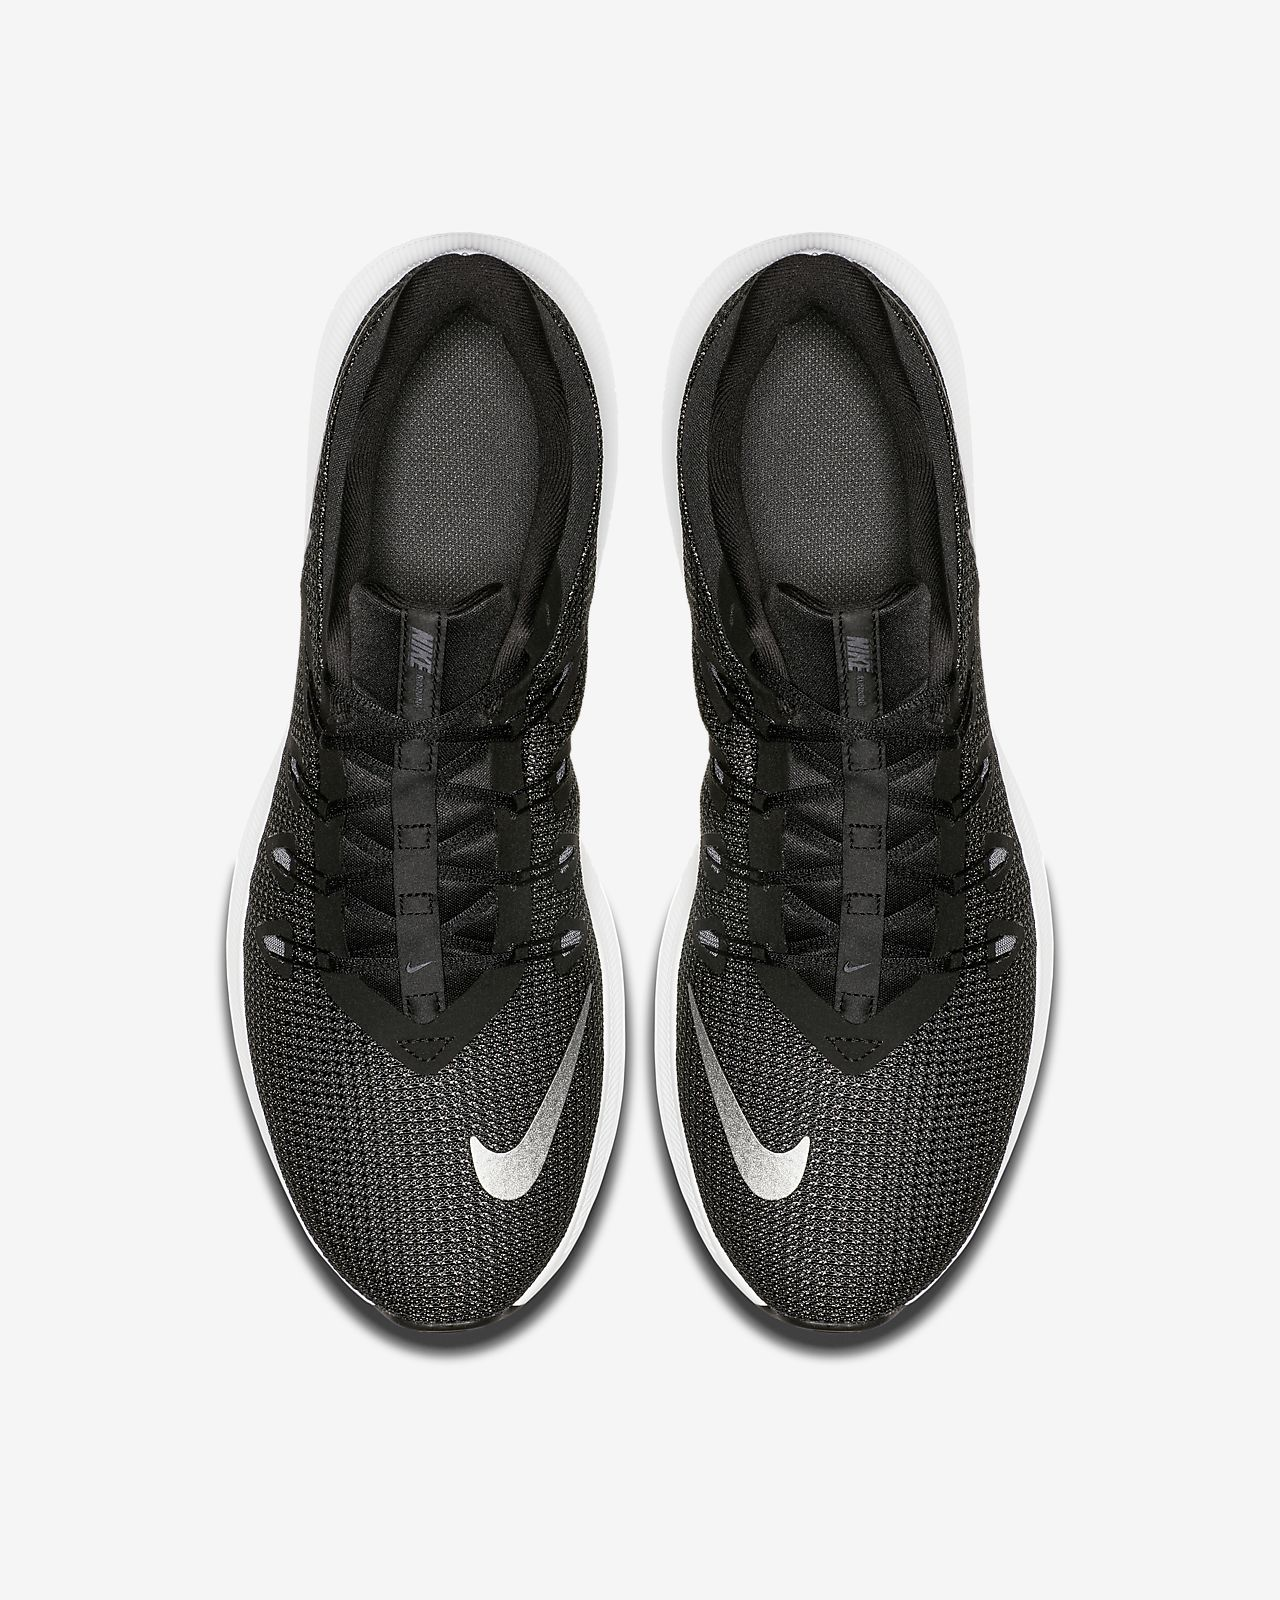 16142508edaae Nike Quest Men s Running Shoe. Nike.com GB